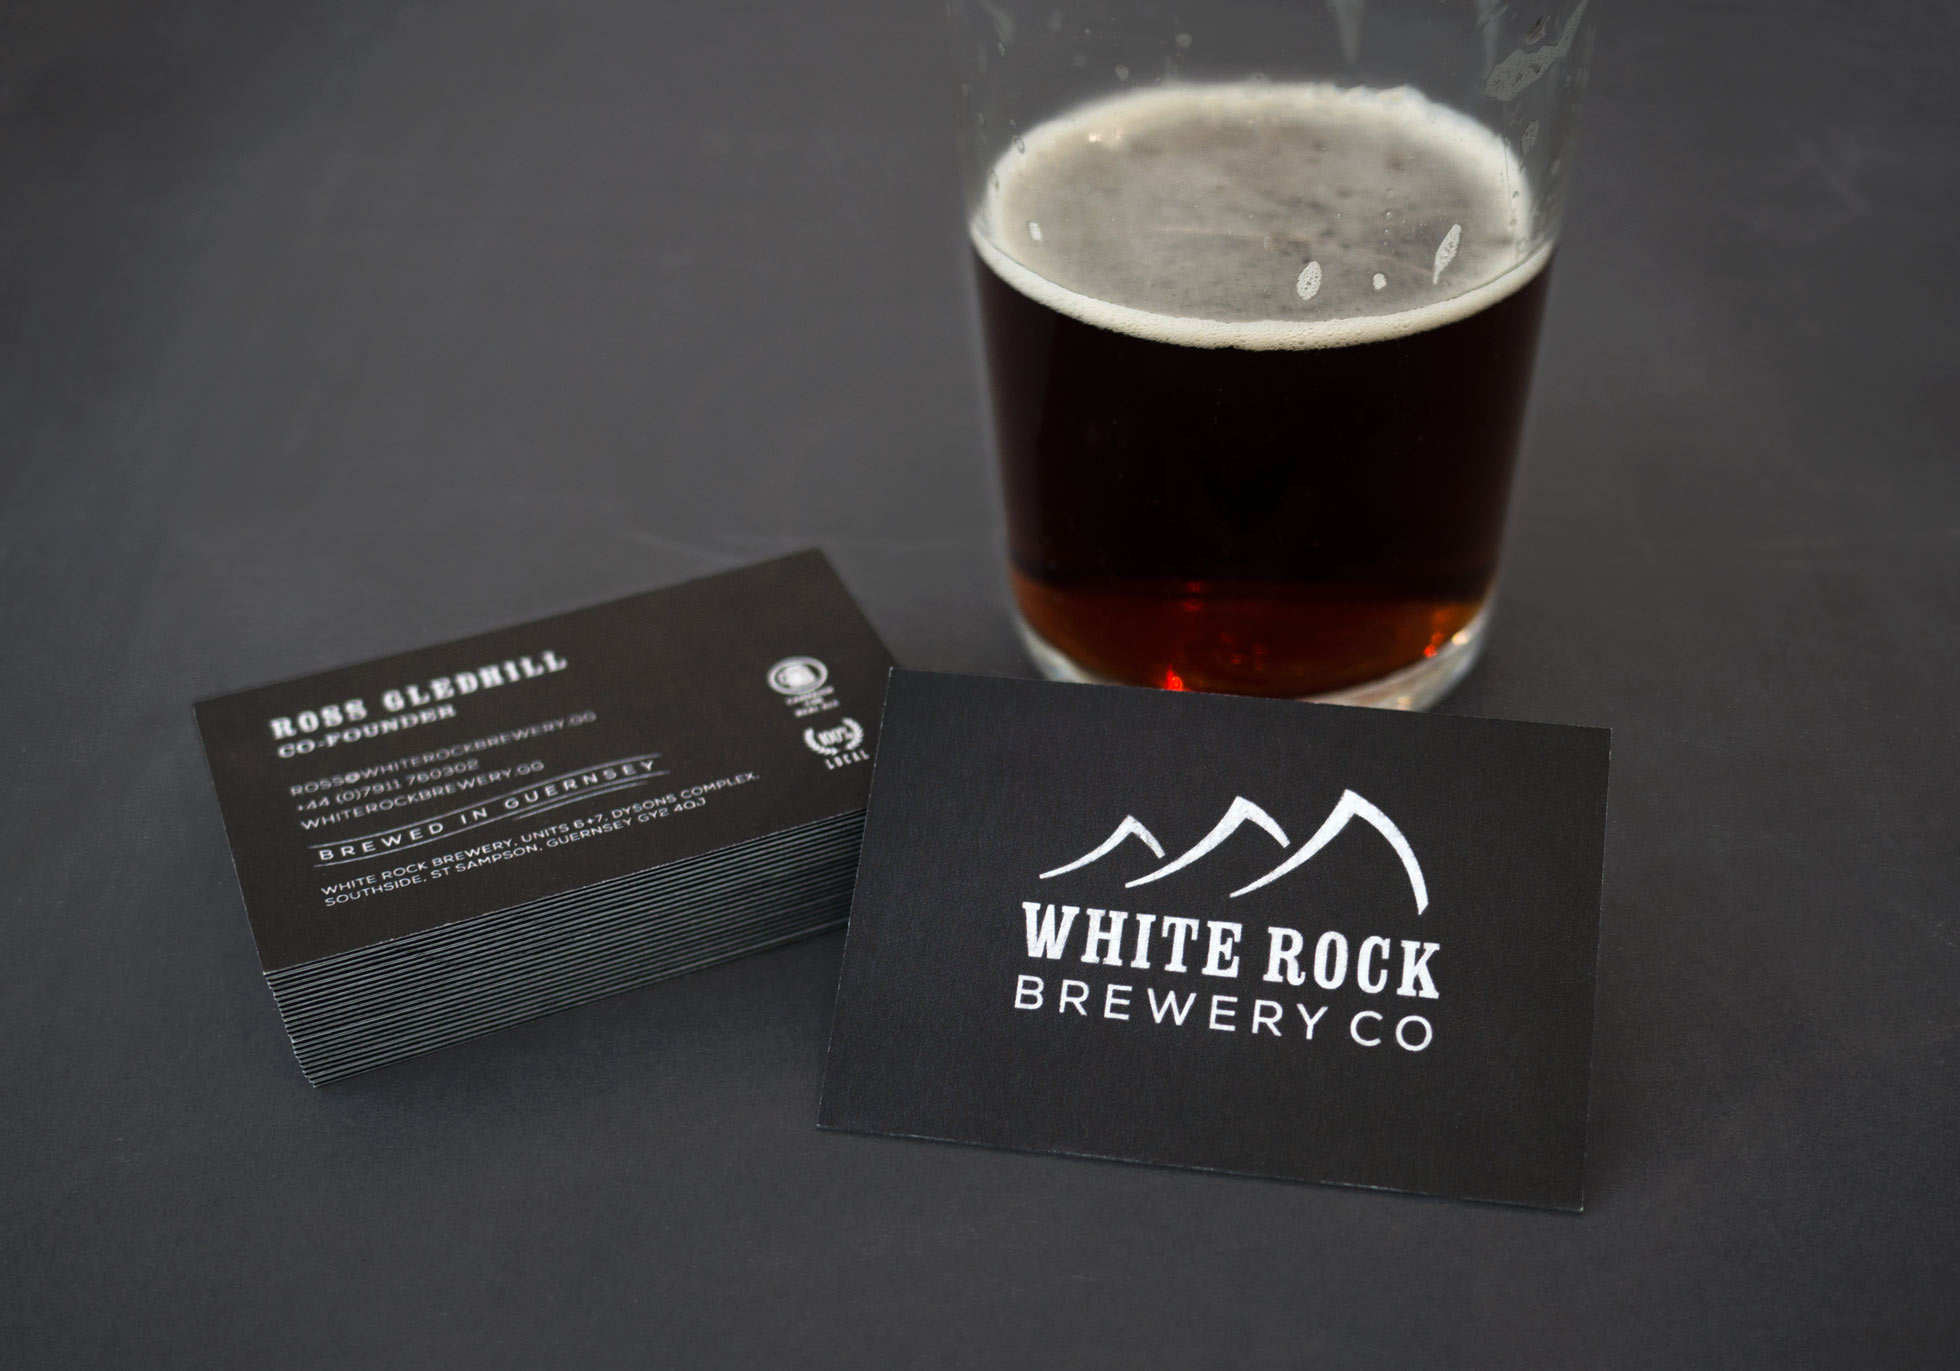 Business cards and a pint